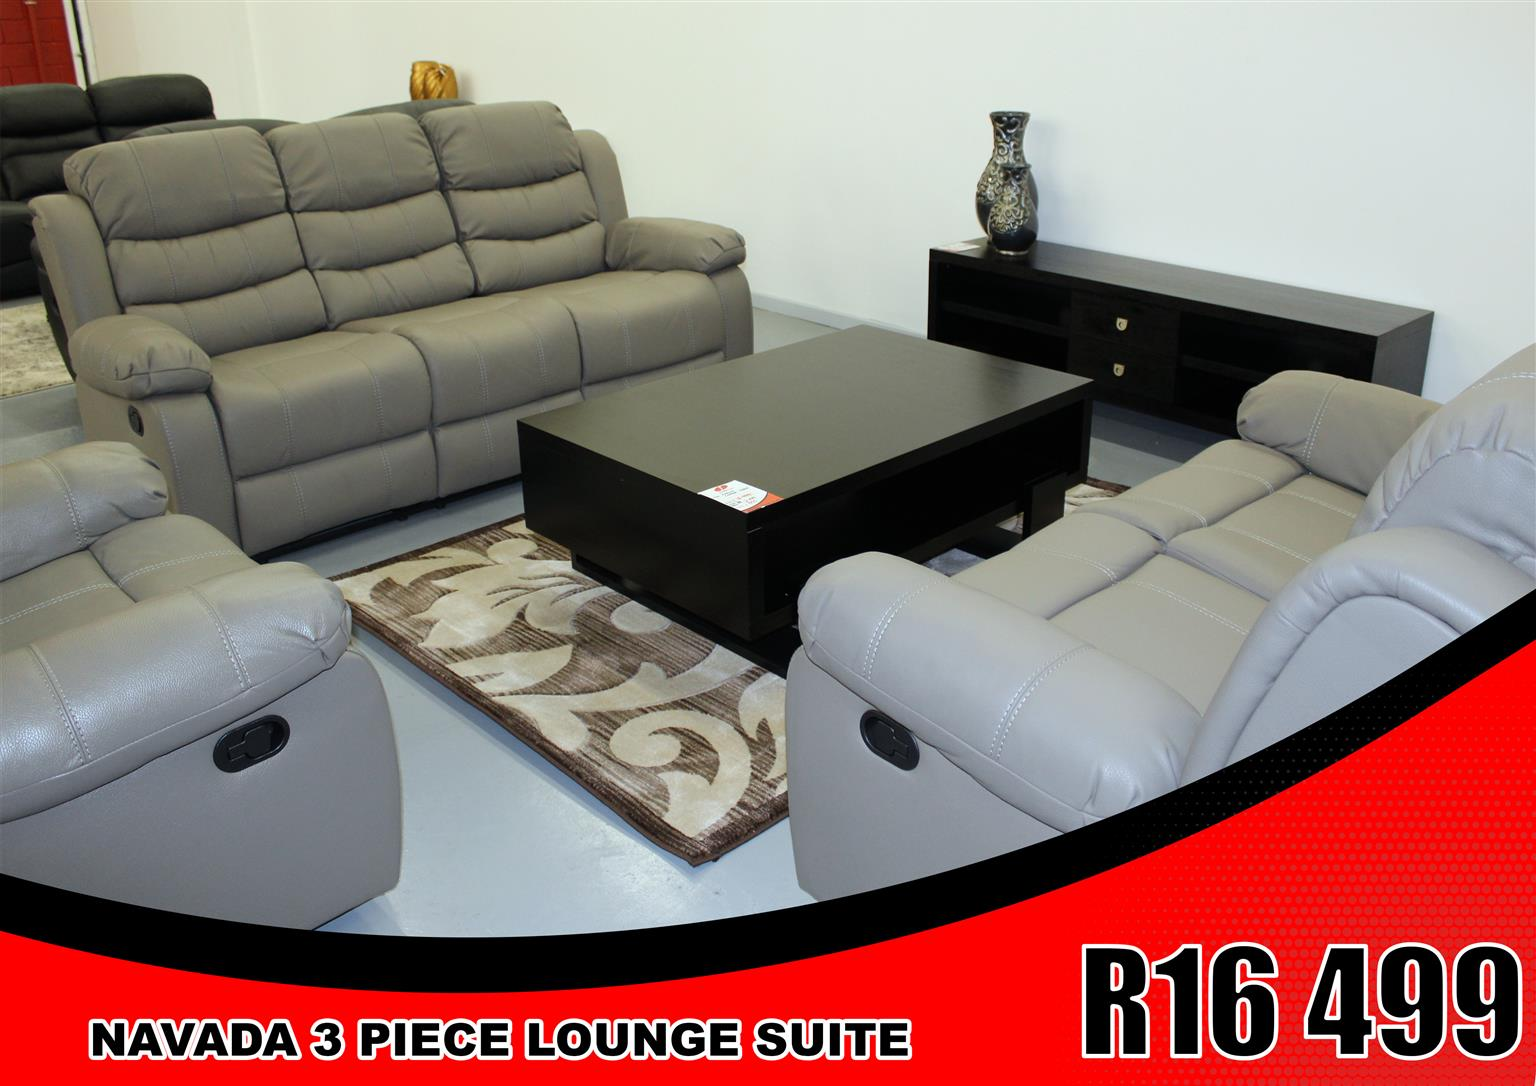 LOUNGE SUITE BRAND NEW NAVADA FOR ONLY R 16 499 !!!!!!!!!!!!!!!!!!!!!